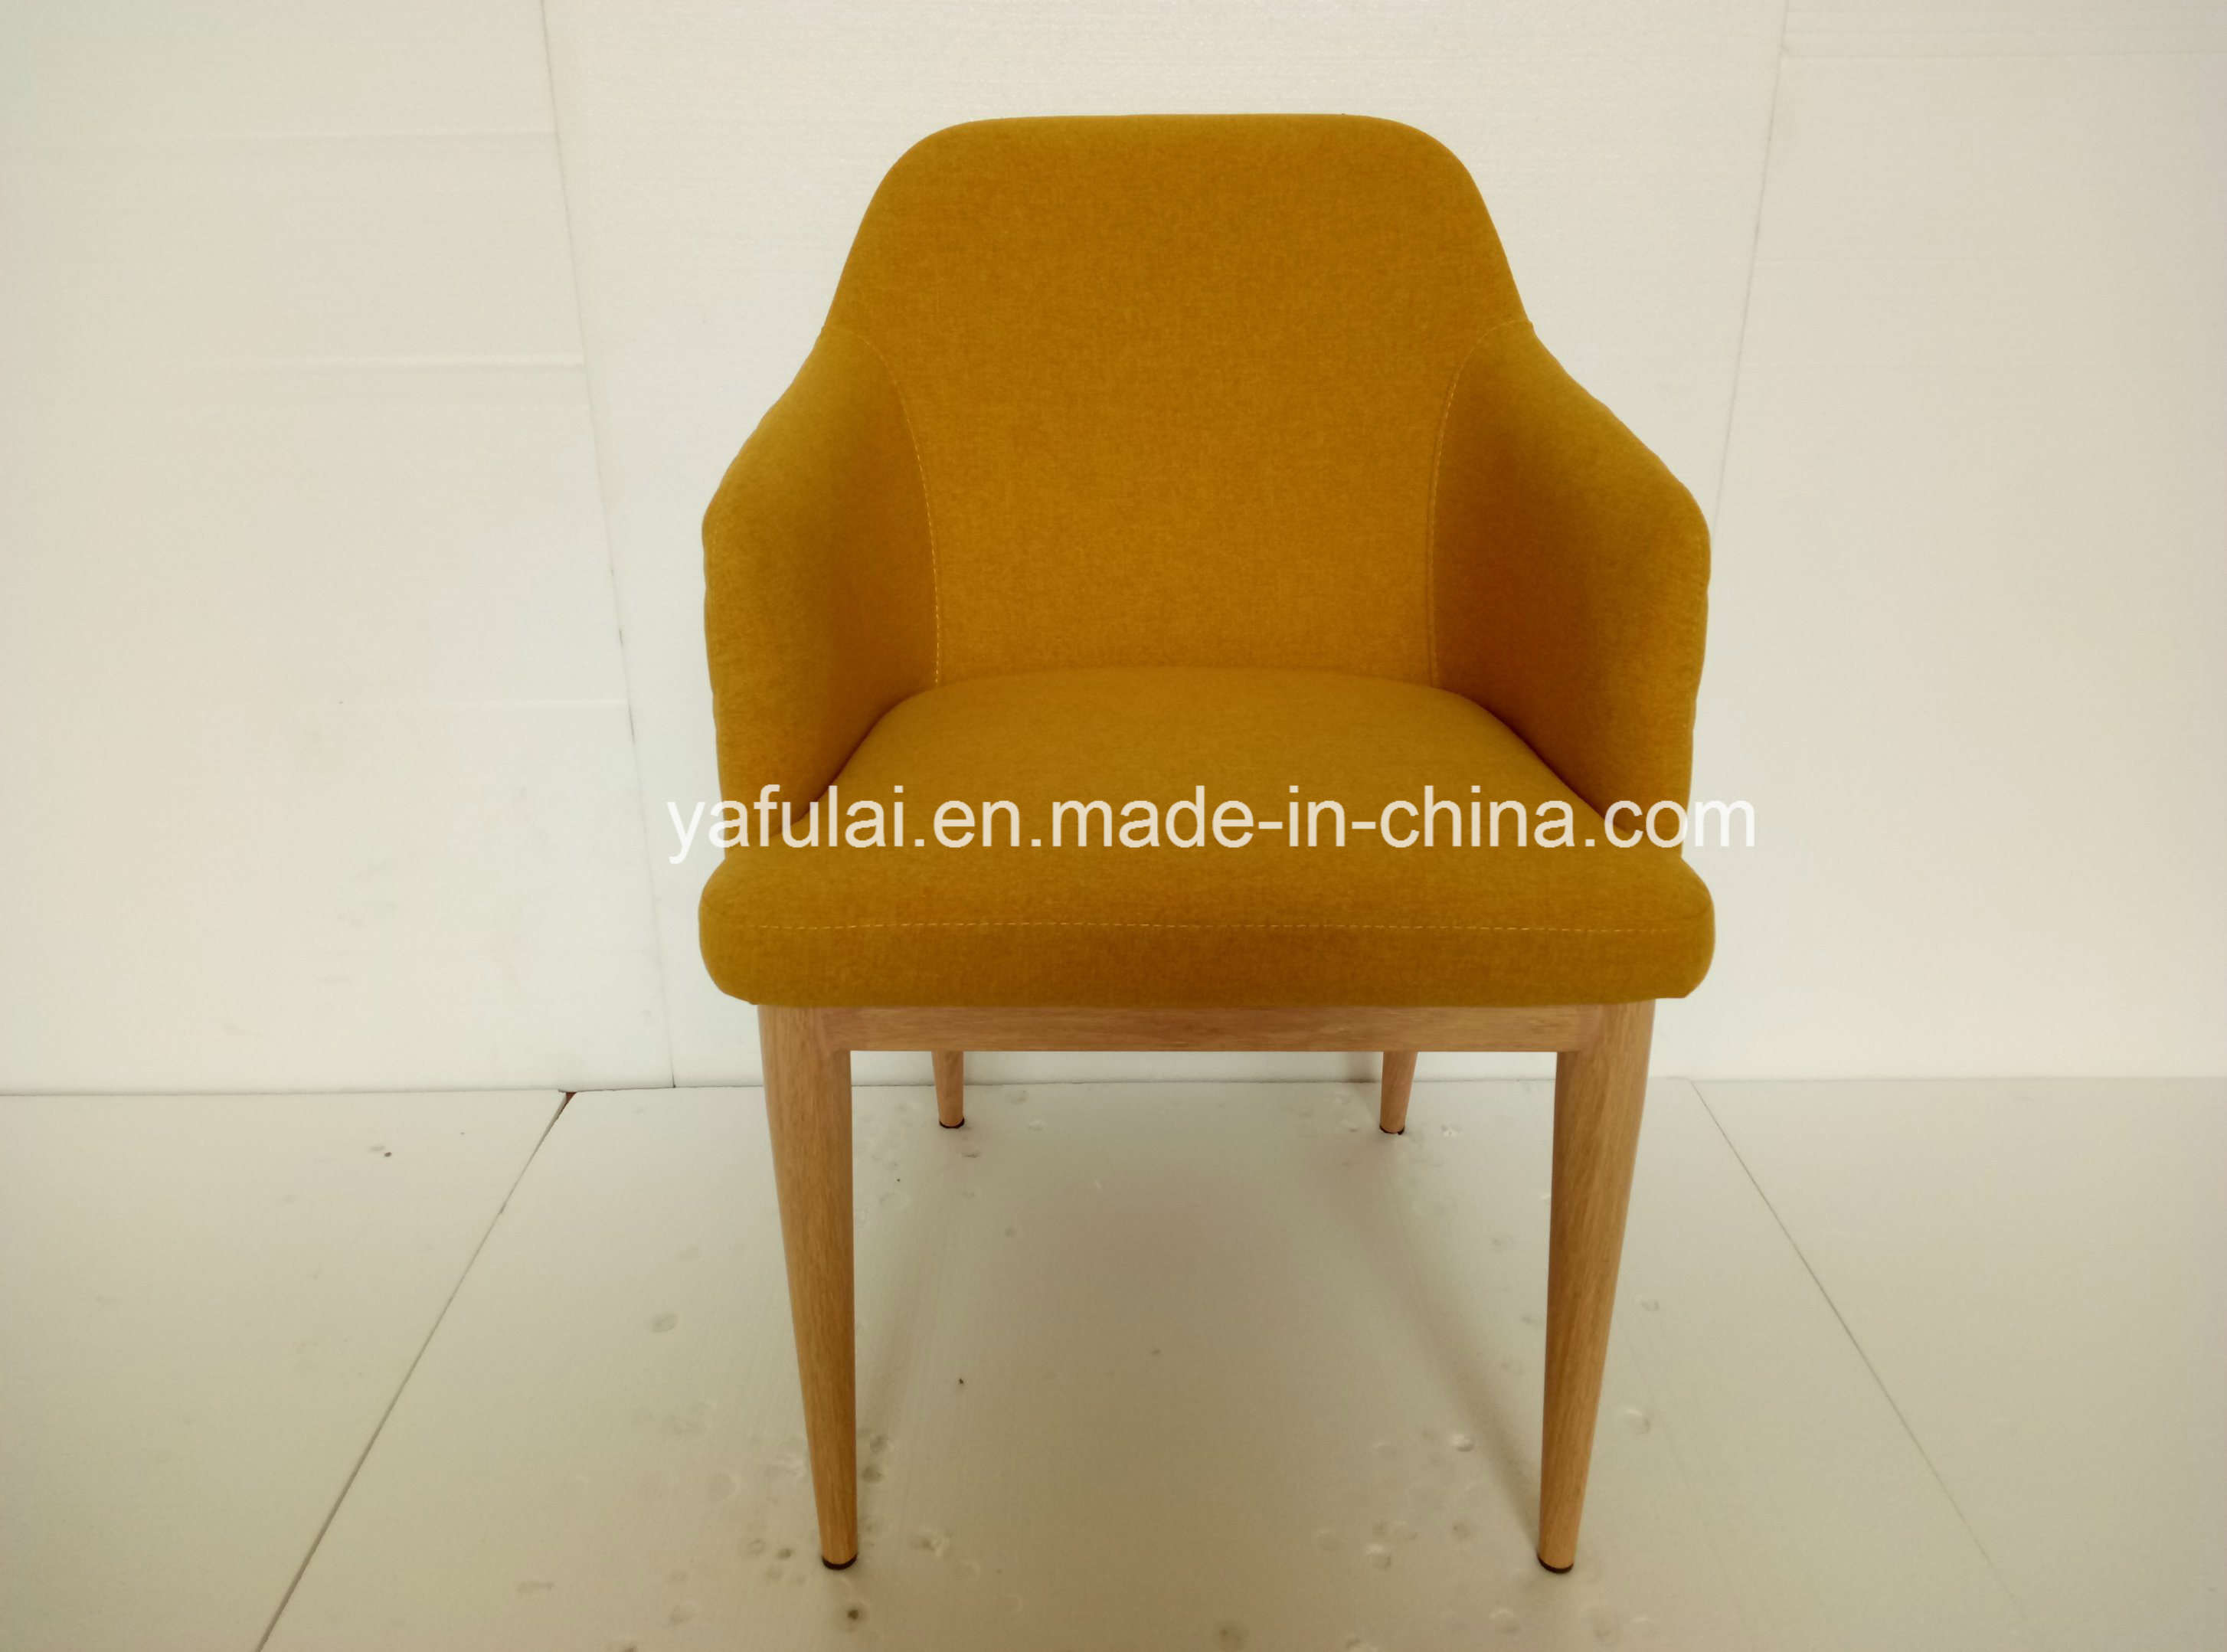 Customized Yellow Fabric Armchair Imitation Wood Grain Home Furniture